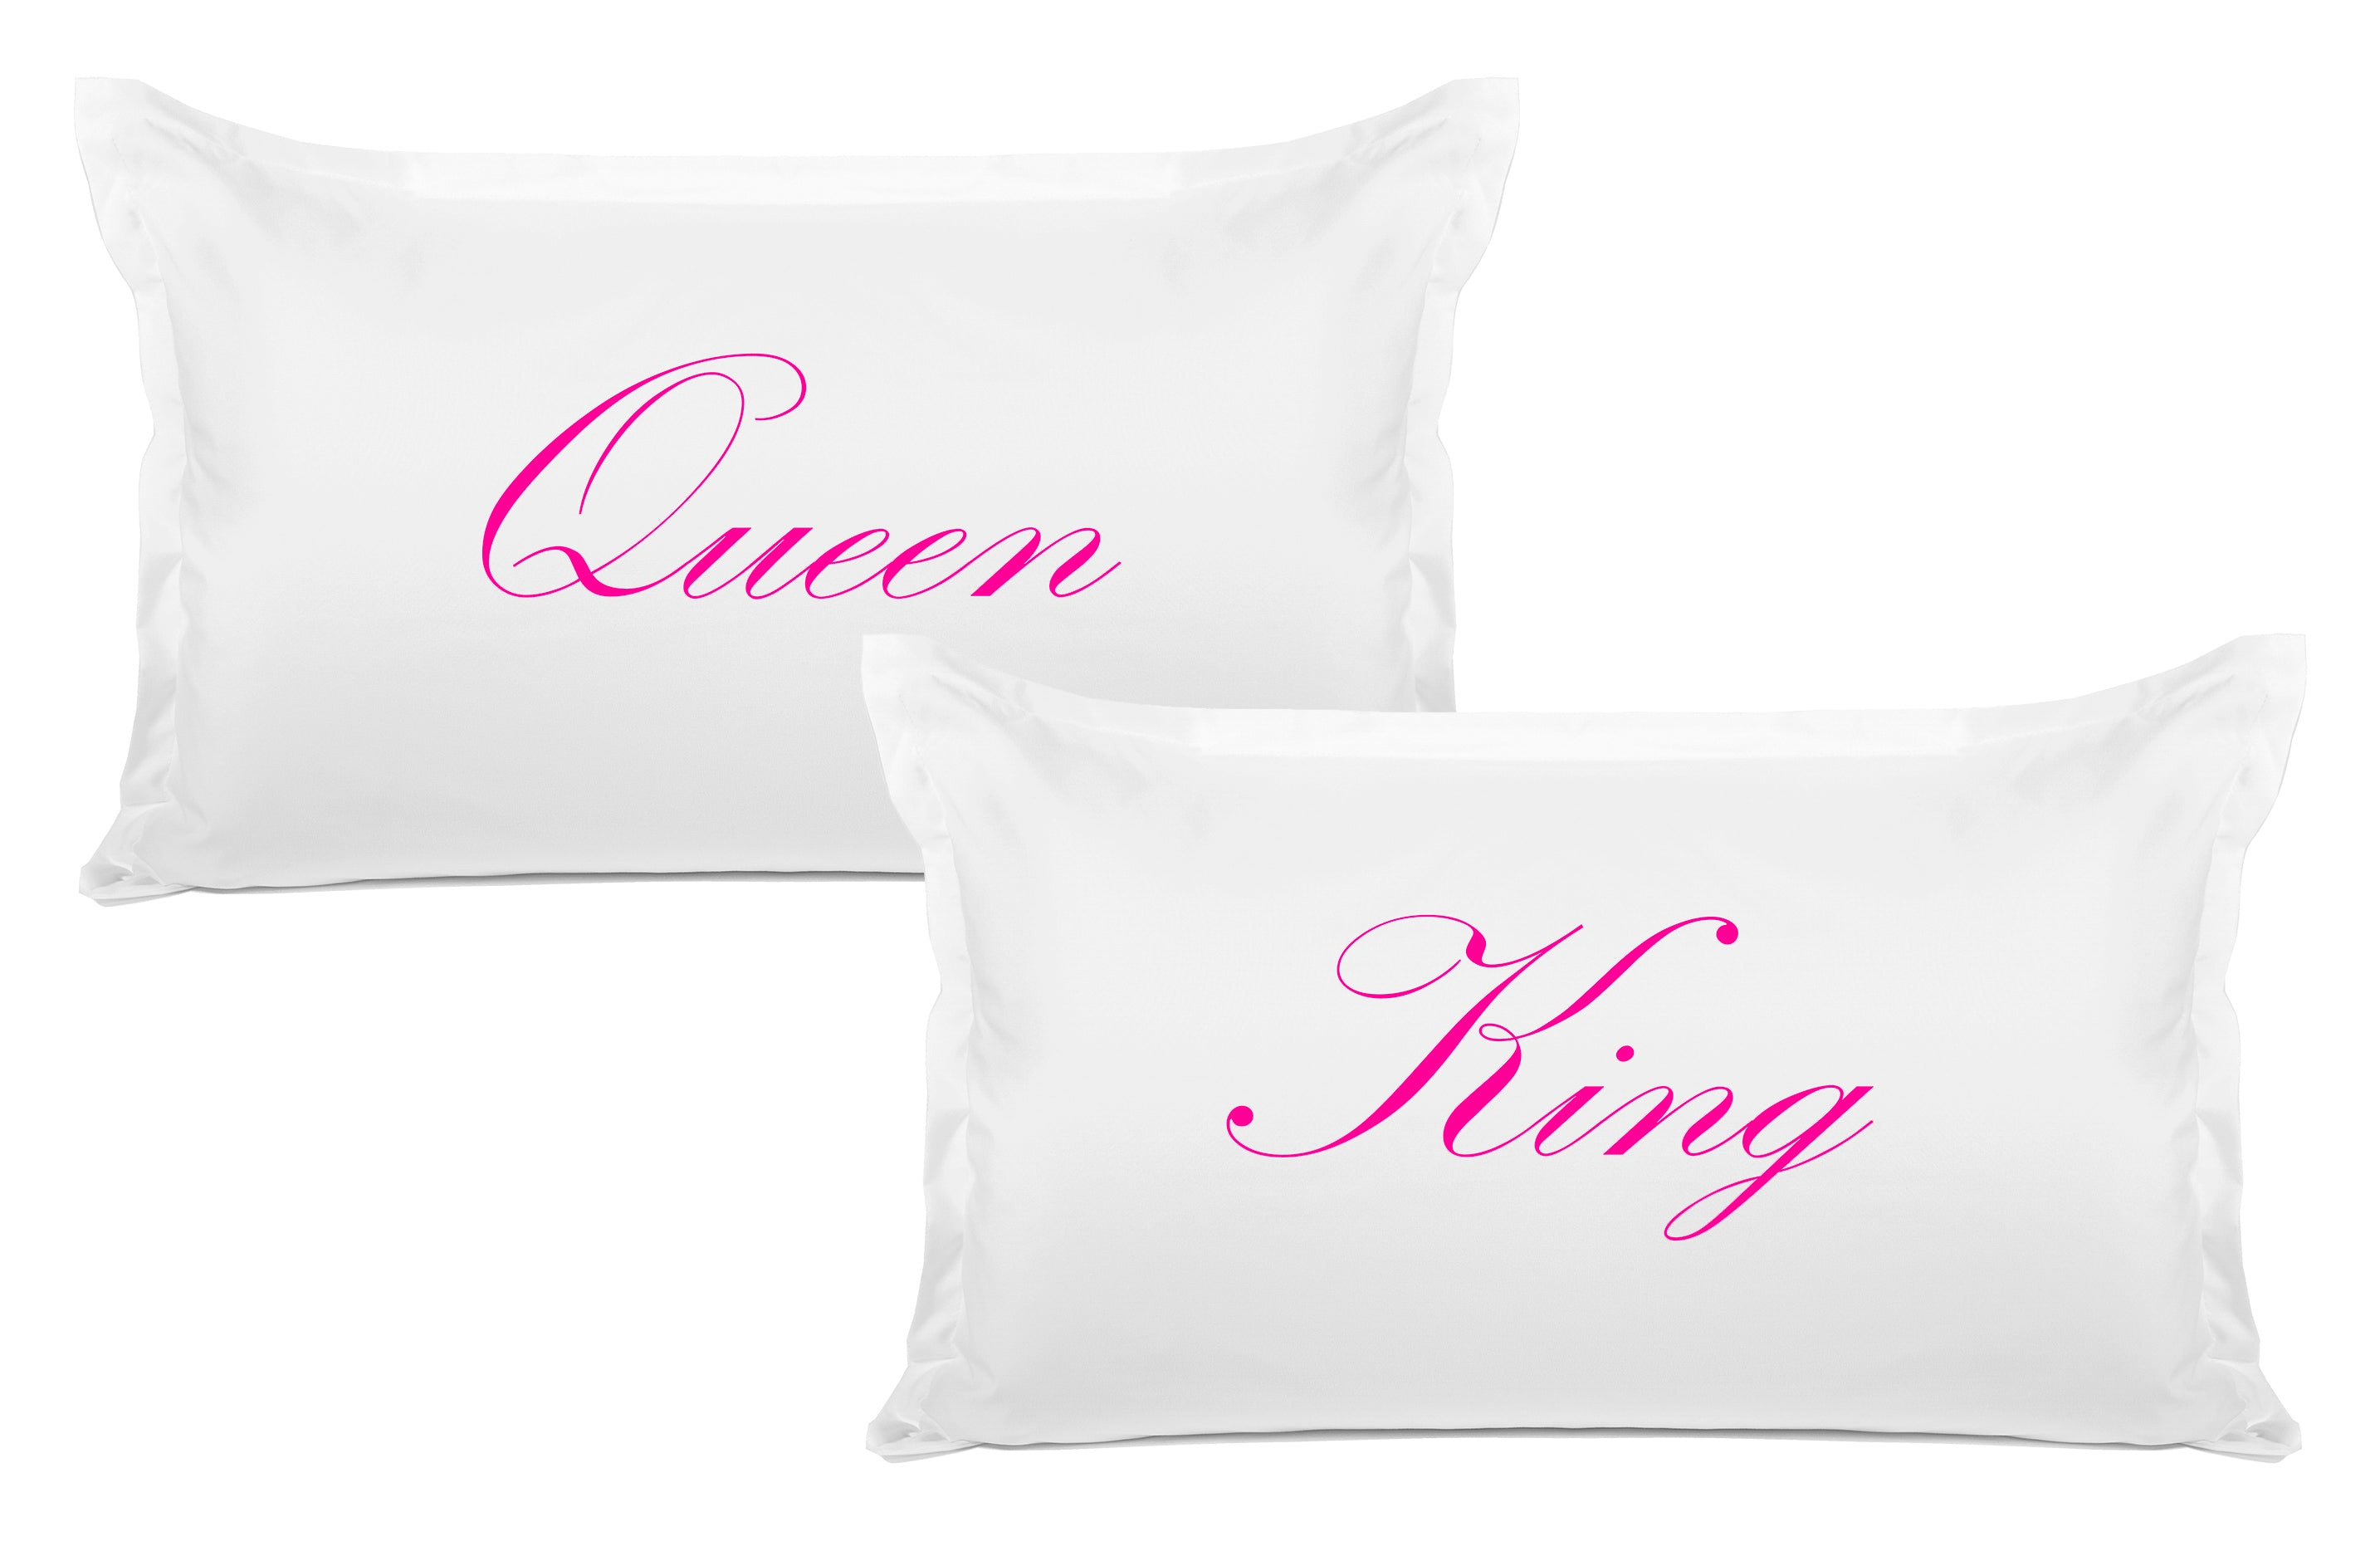 King, Queen pillow sets Di Lewis bedroom decor